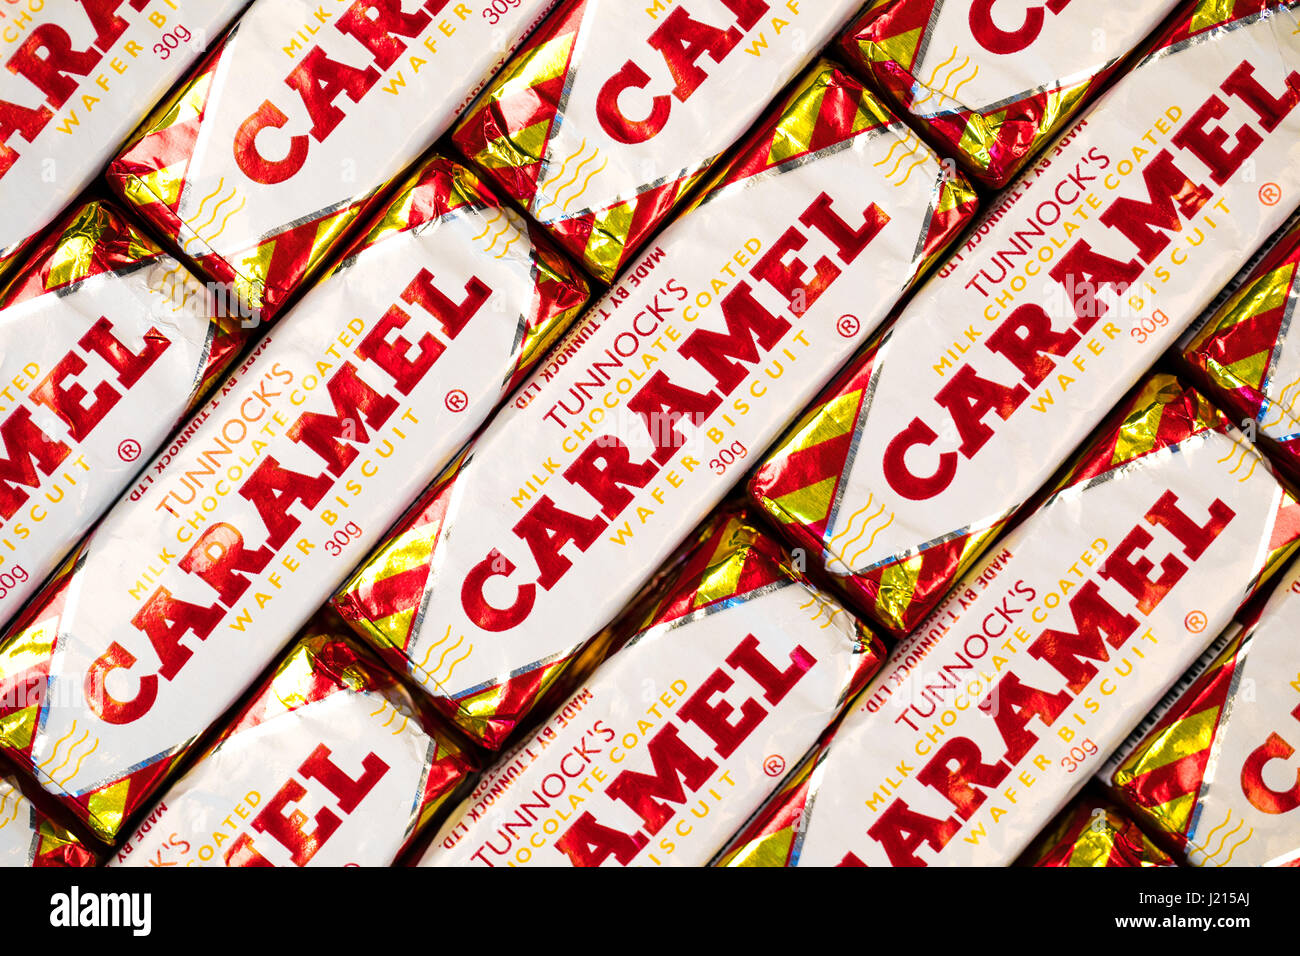 Southampton, UK - 17 March 2017: A background of Tunnock's Caramel Wafer biscuits, a popular chocolate coated snack. - Stock Image